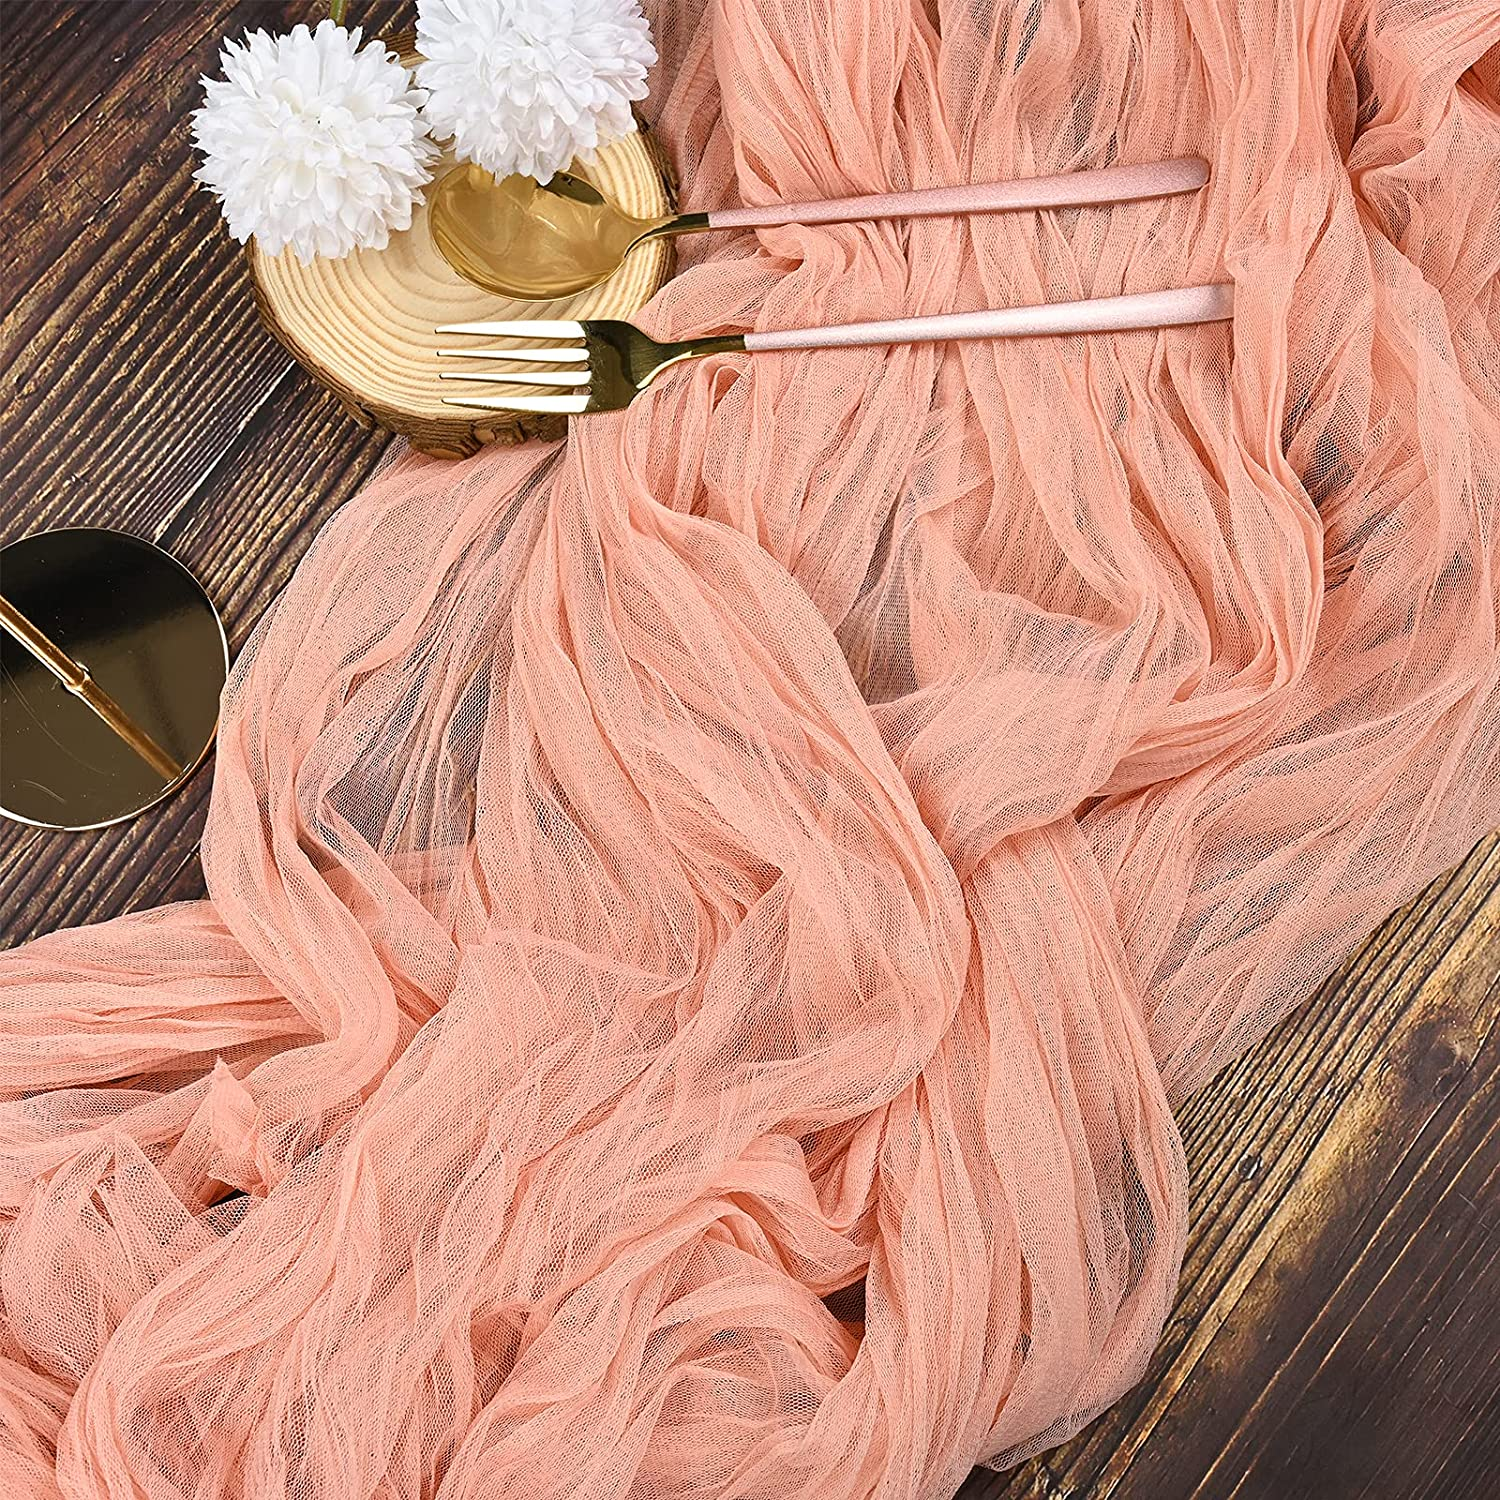 fani 6 Pack10Ft Chiffon Large-scale sale Yarn Sale Special Price Runner Table Cheesecloth Runn